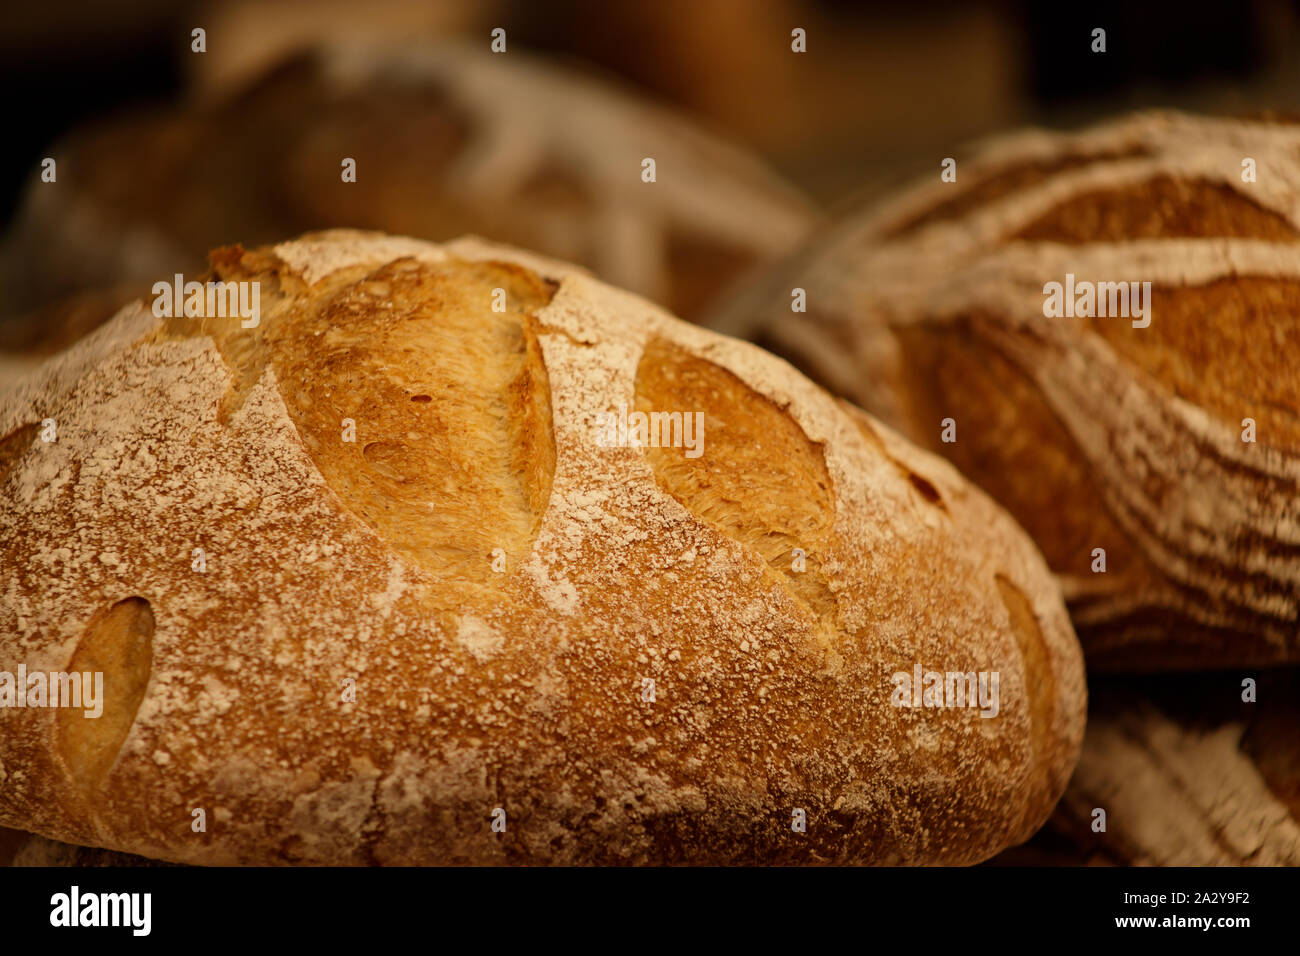 Fresh round rye bread with crispy crust. Rustic organic food. Close-up, selective focus. Stock Photo